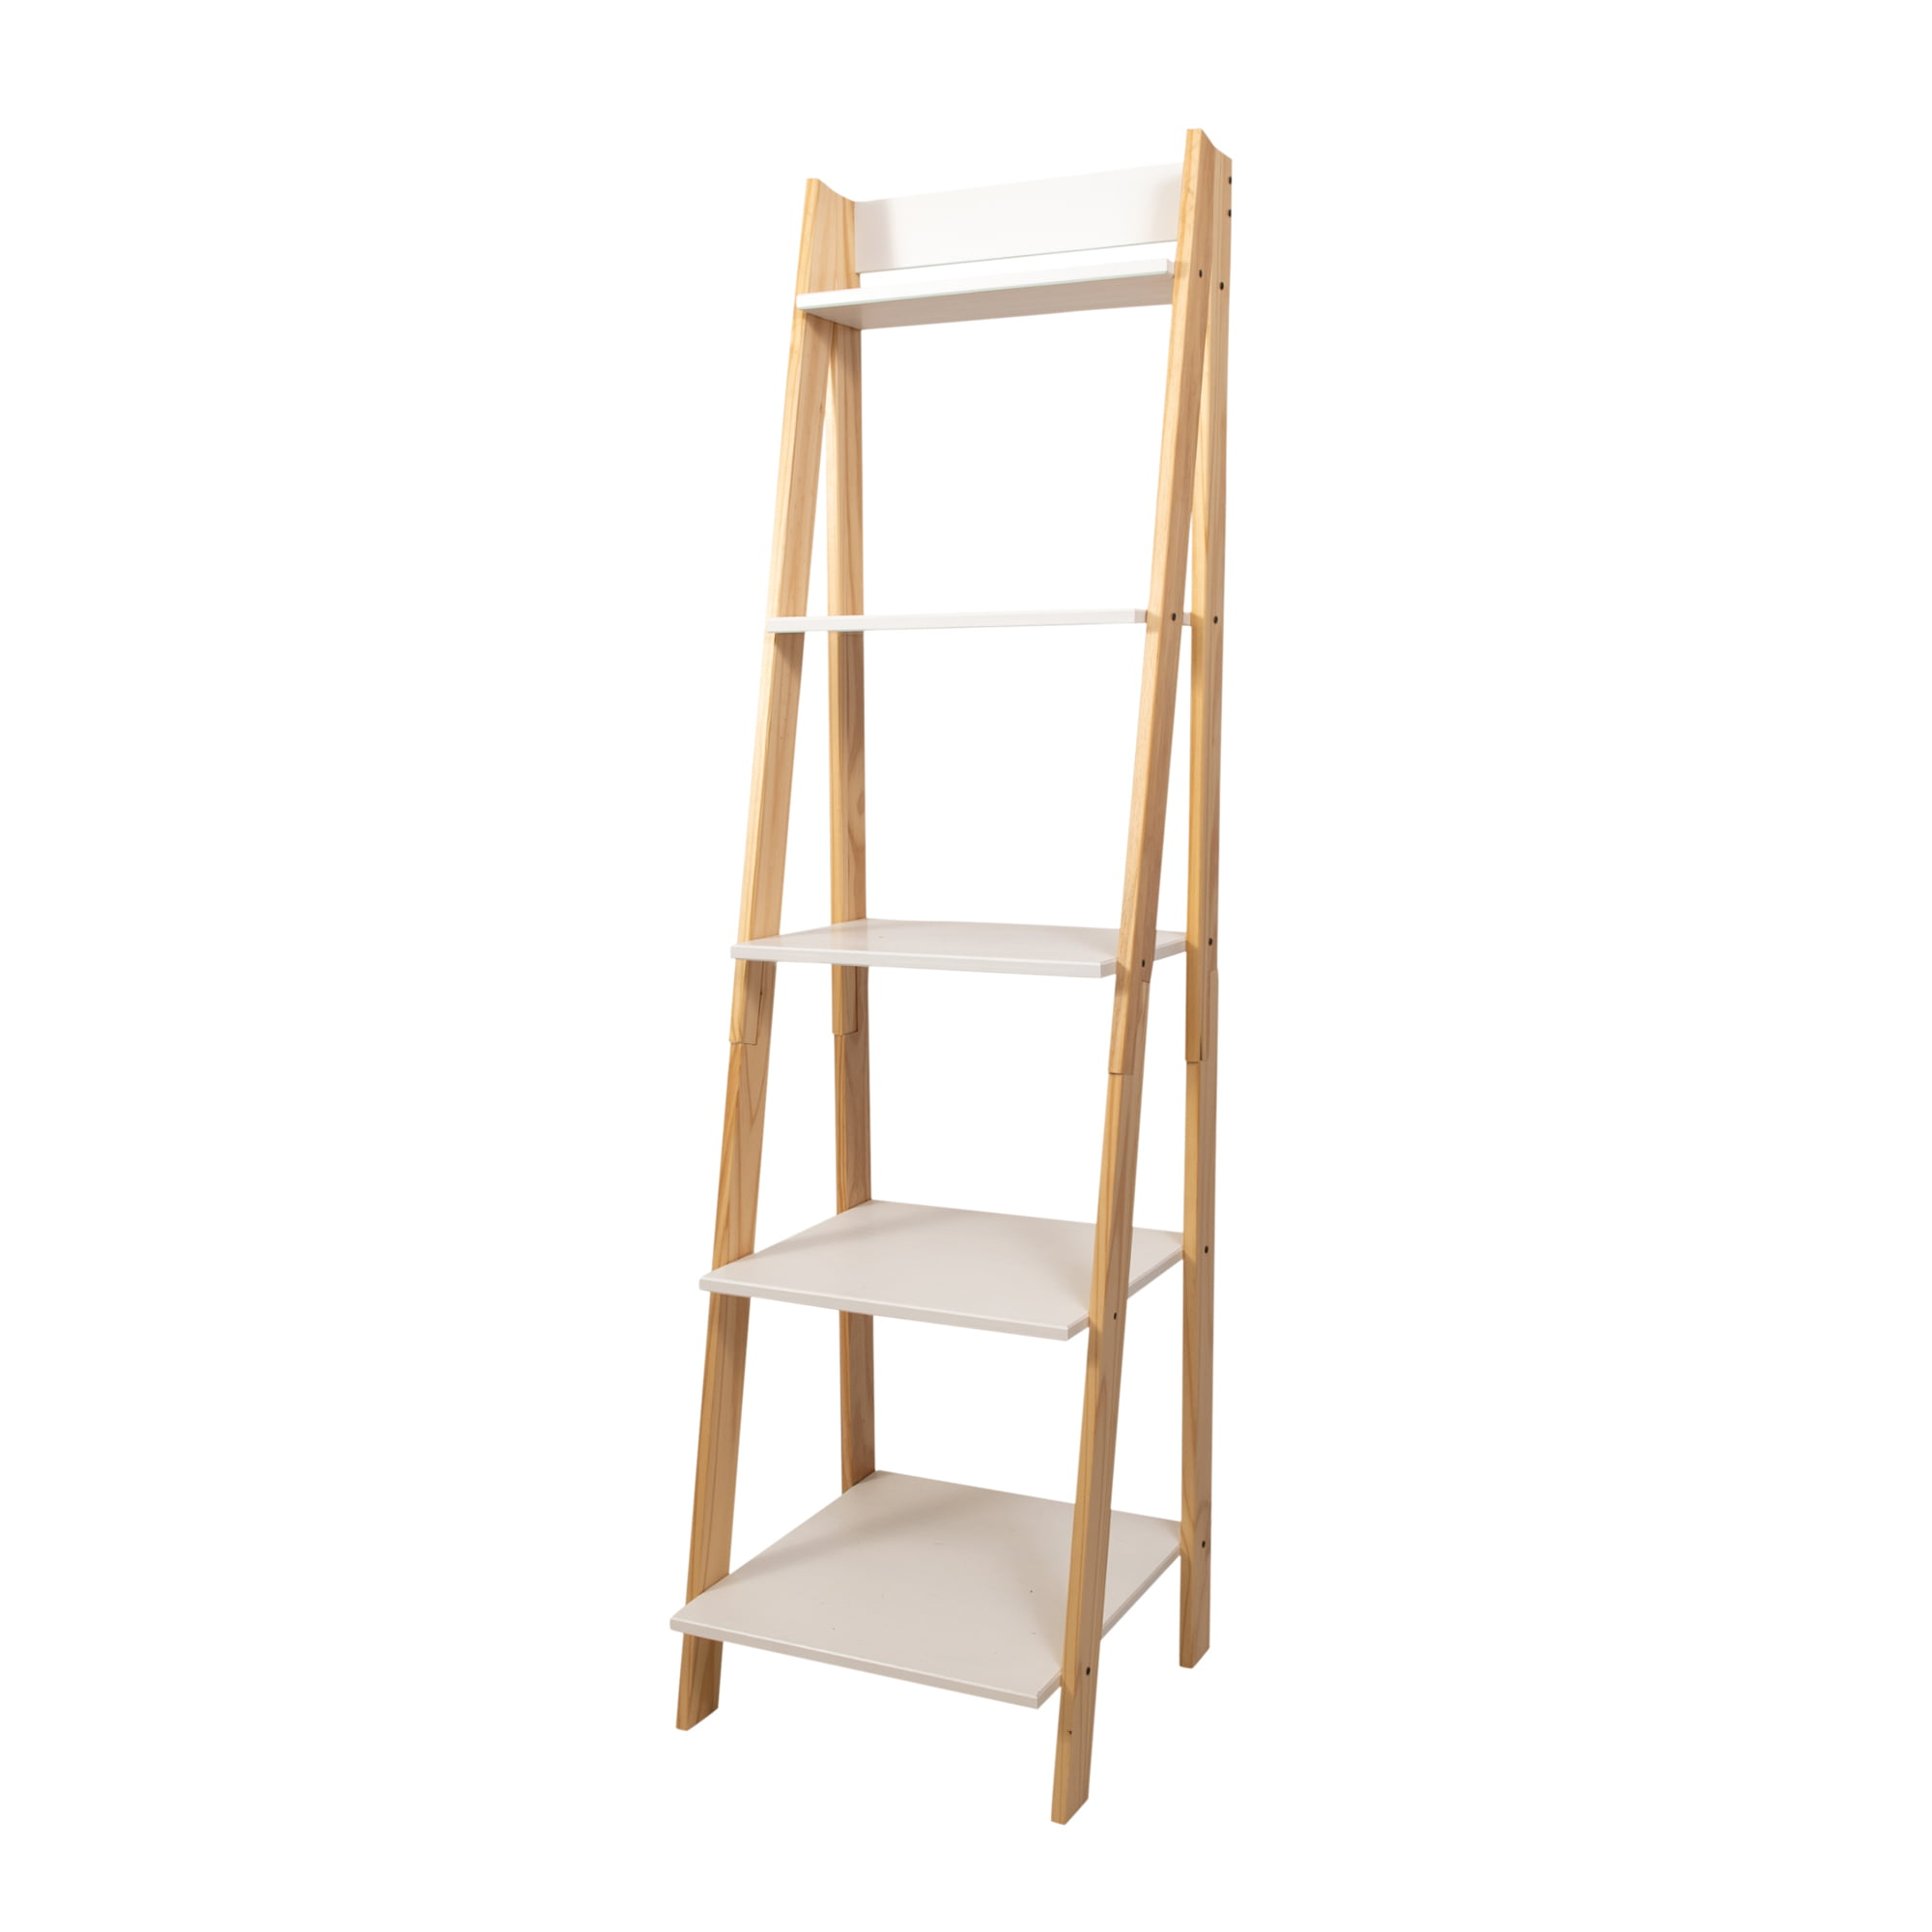 Adeptus Solid Wood Split 5 Shelf Ladder Natural Legs White Shelves Walmart Com Walmart Com